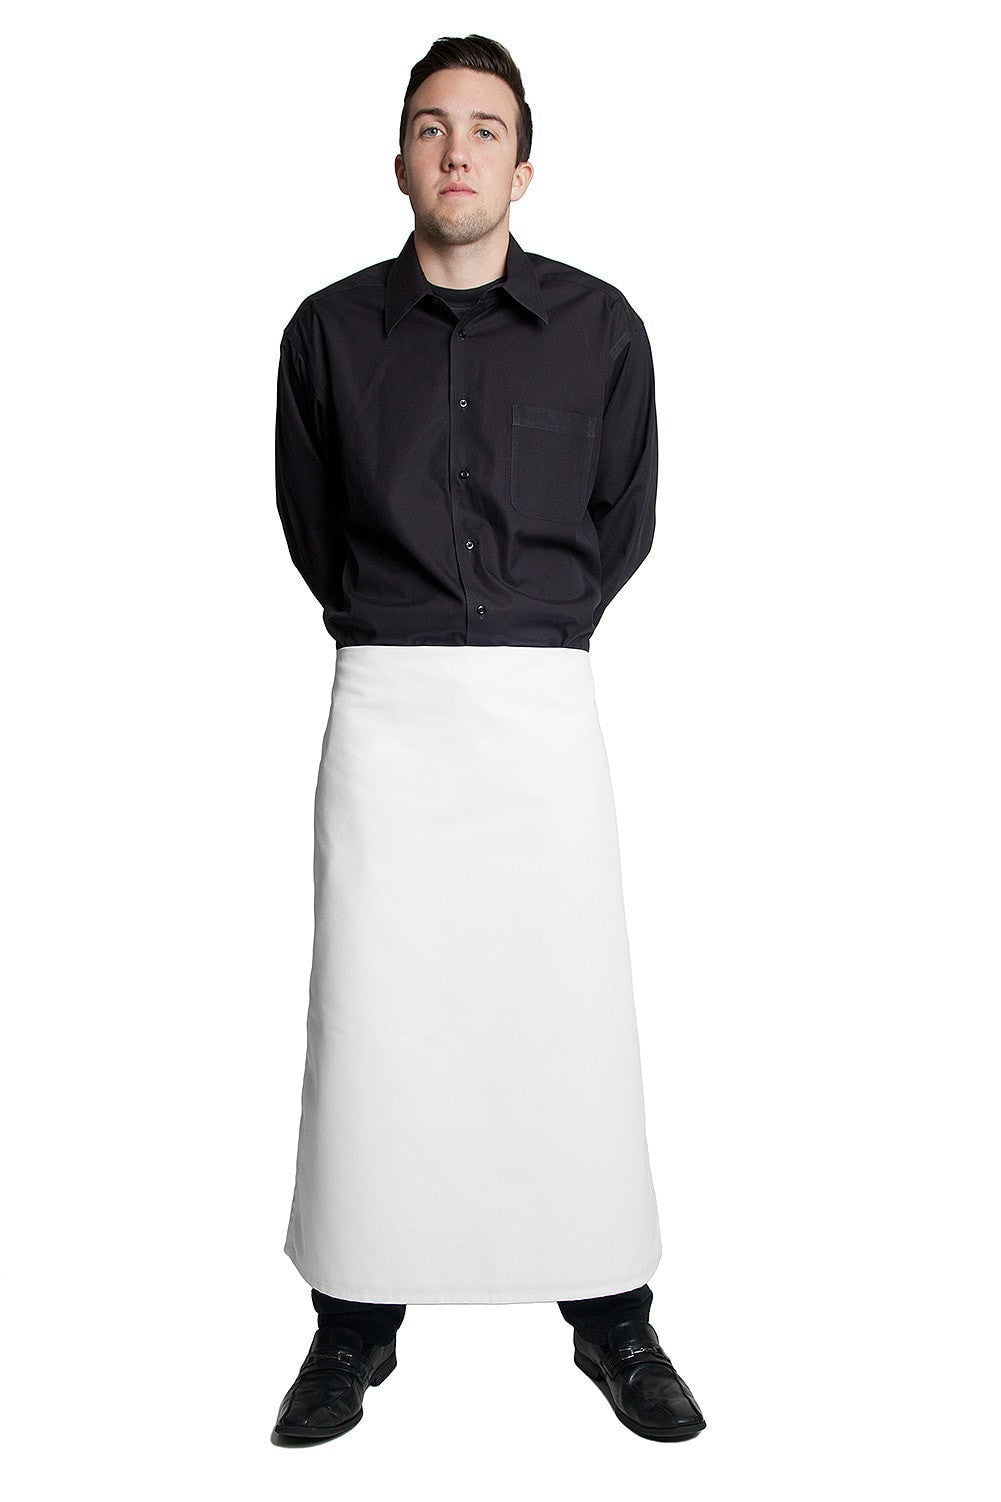 "Full Bistro Apron w/No Pockets 32""L x 28""W White"